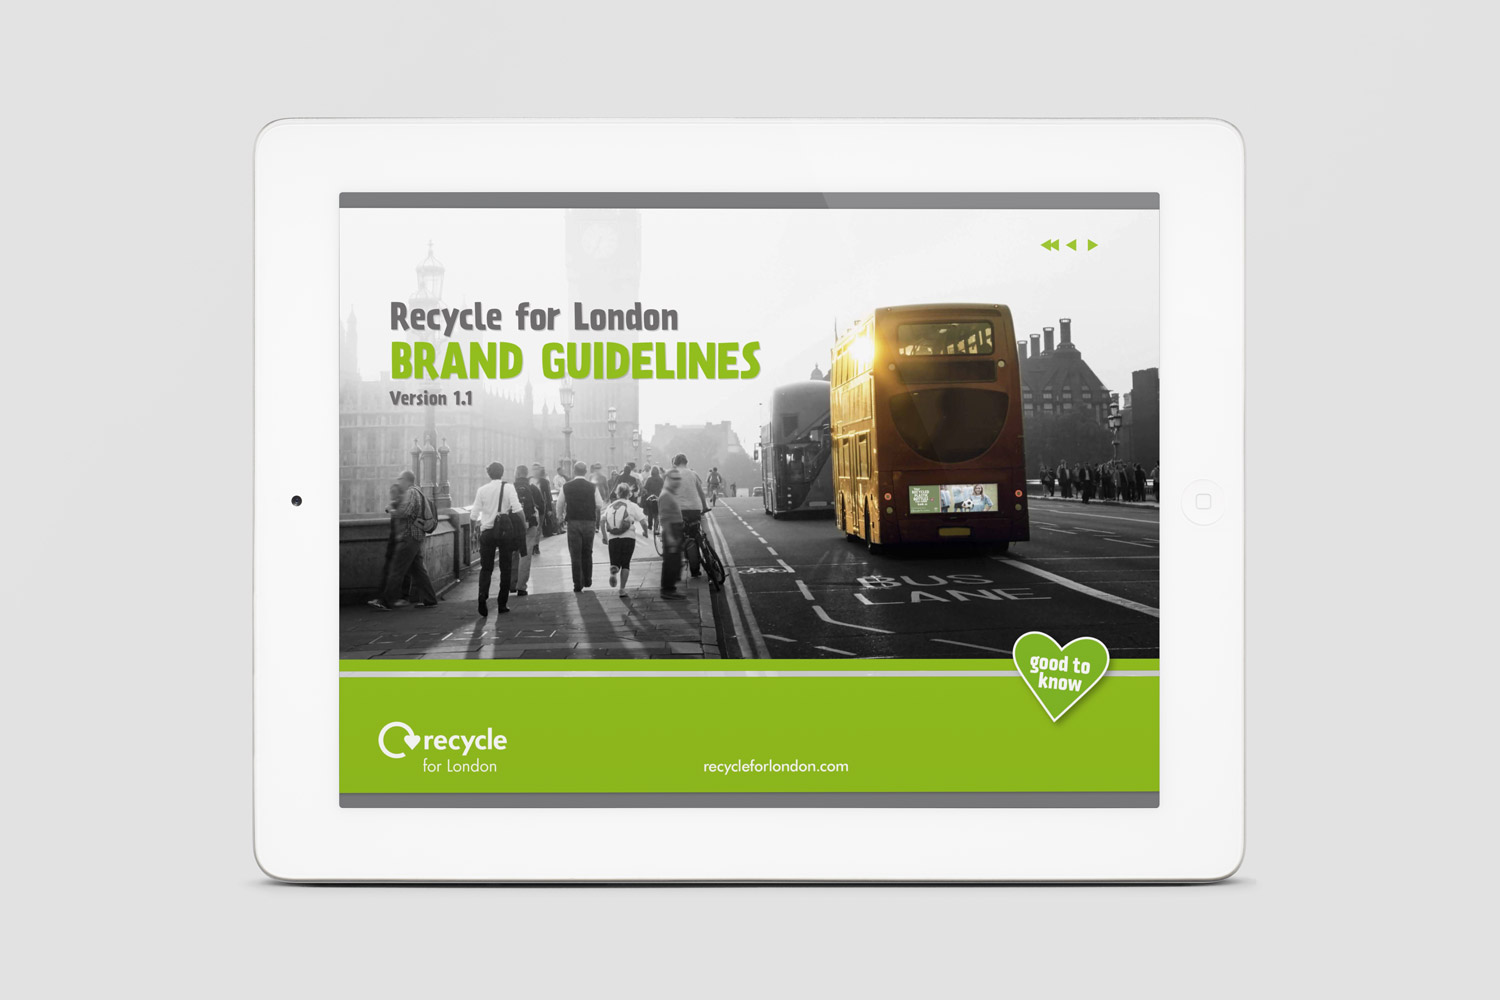 Recycle-for-London-Brand-Guidelines-Cover-iPad-leaflet-by-Get-it-Sorted.jpg